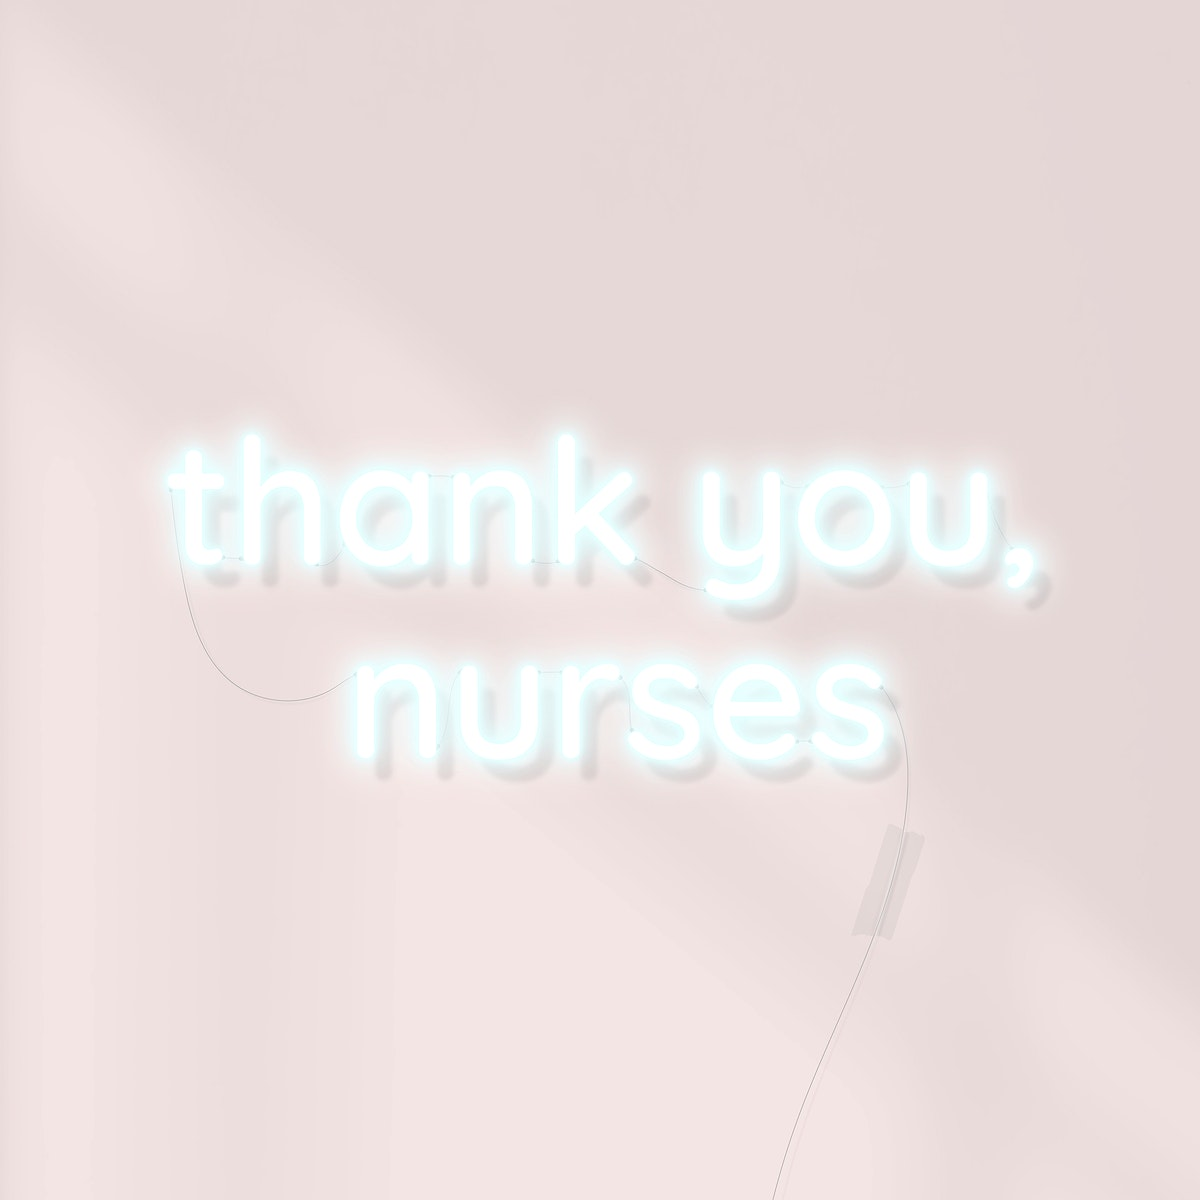 Thank you nurses for working to fight covid-19 neon sign vector